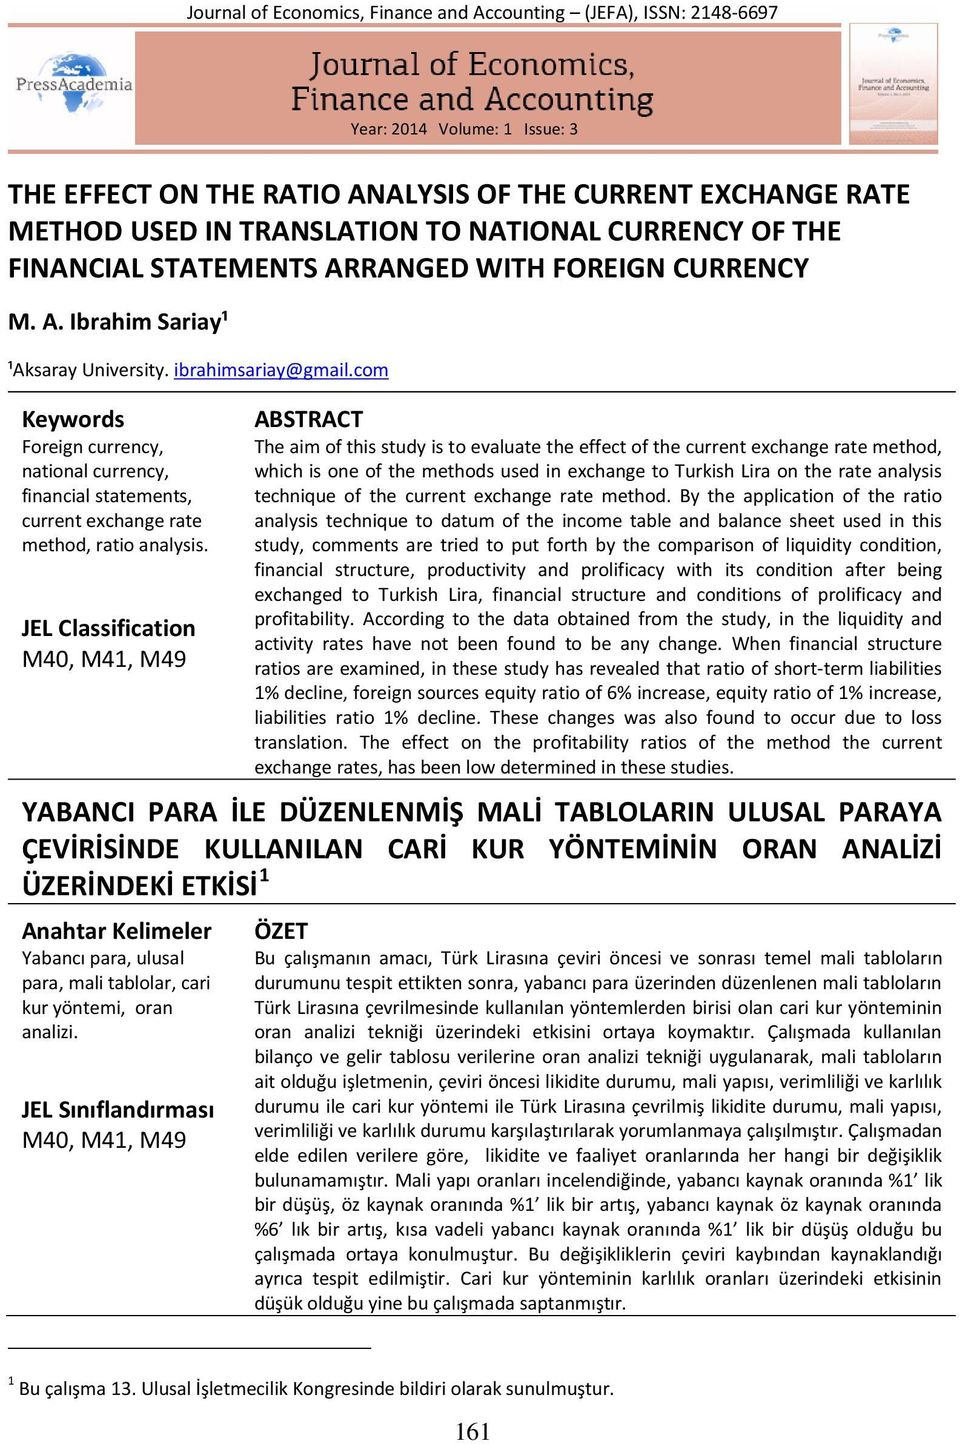 com Keywords Foreign currency, national currency, financial statements, current exchange rate method, ratio analysis.